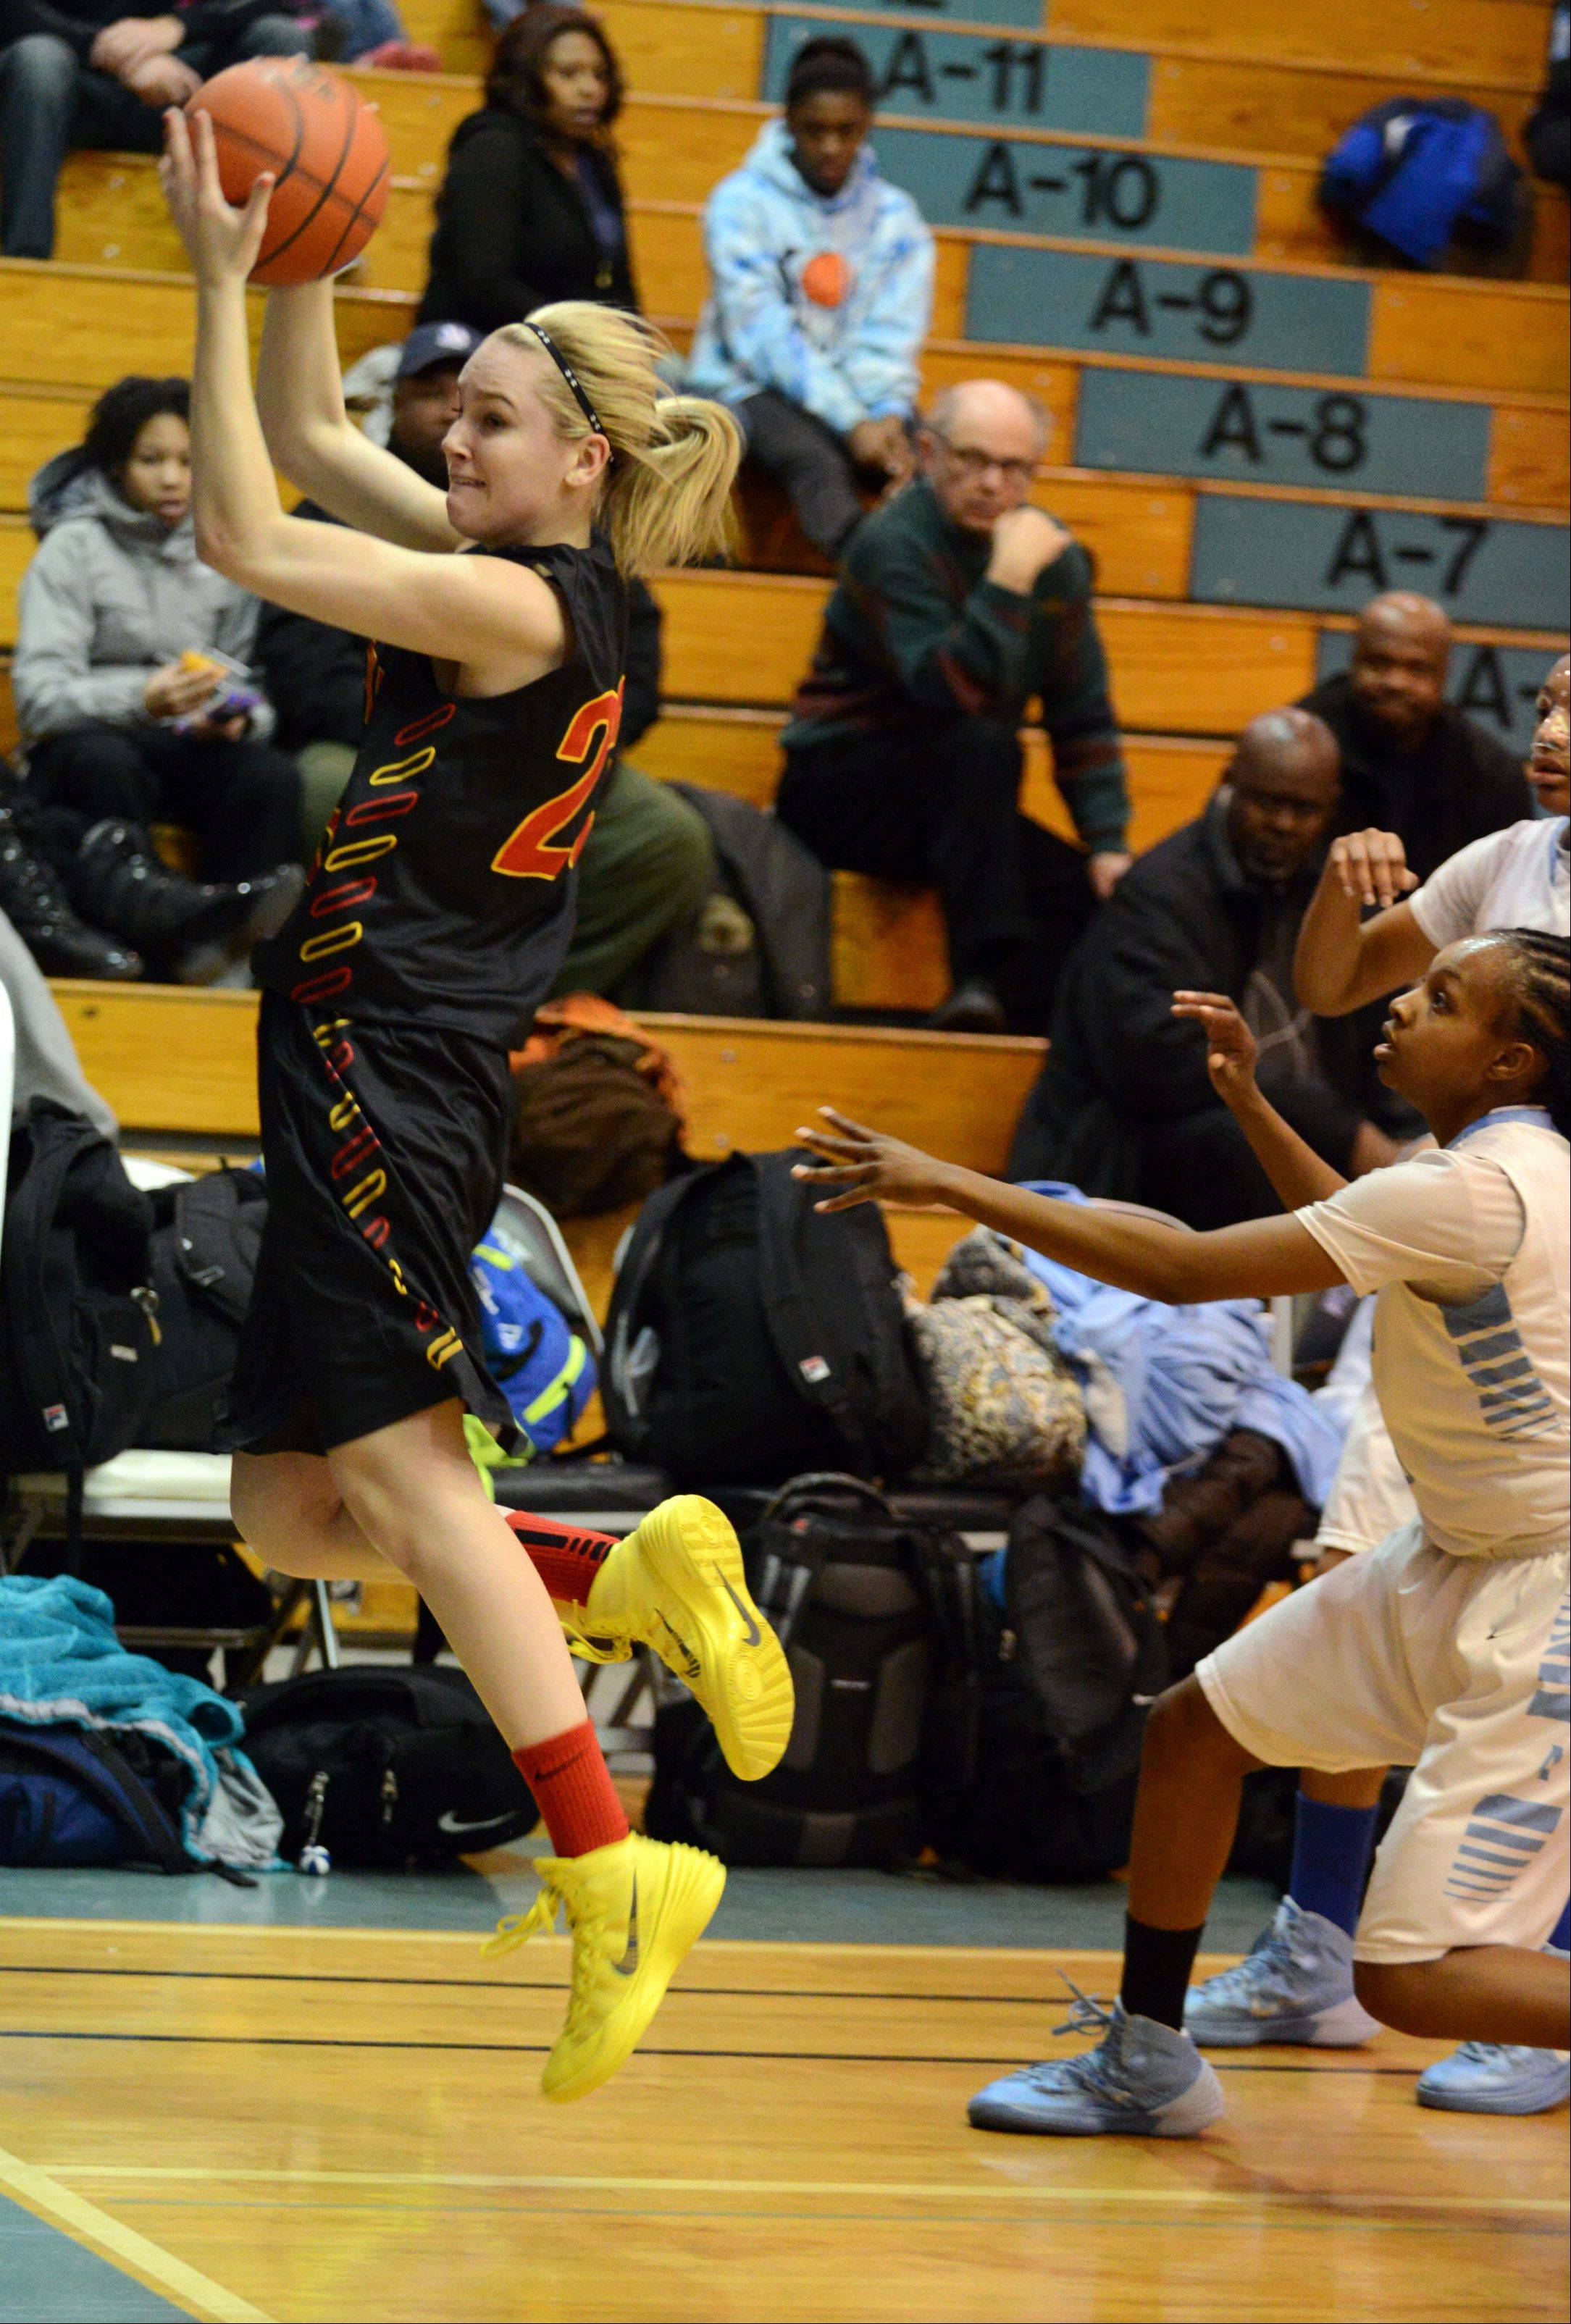 Images from the Batavia vs. Joliet Catholic girls basketball game Monday, January 20, 2014 in Villa Park.